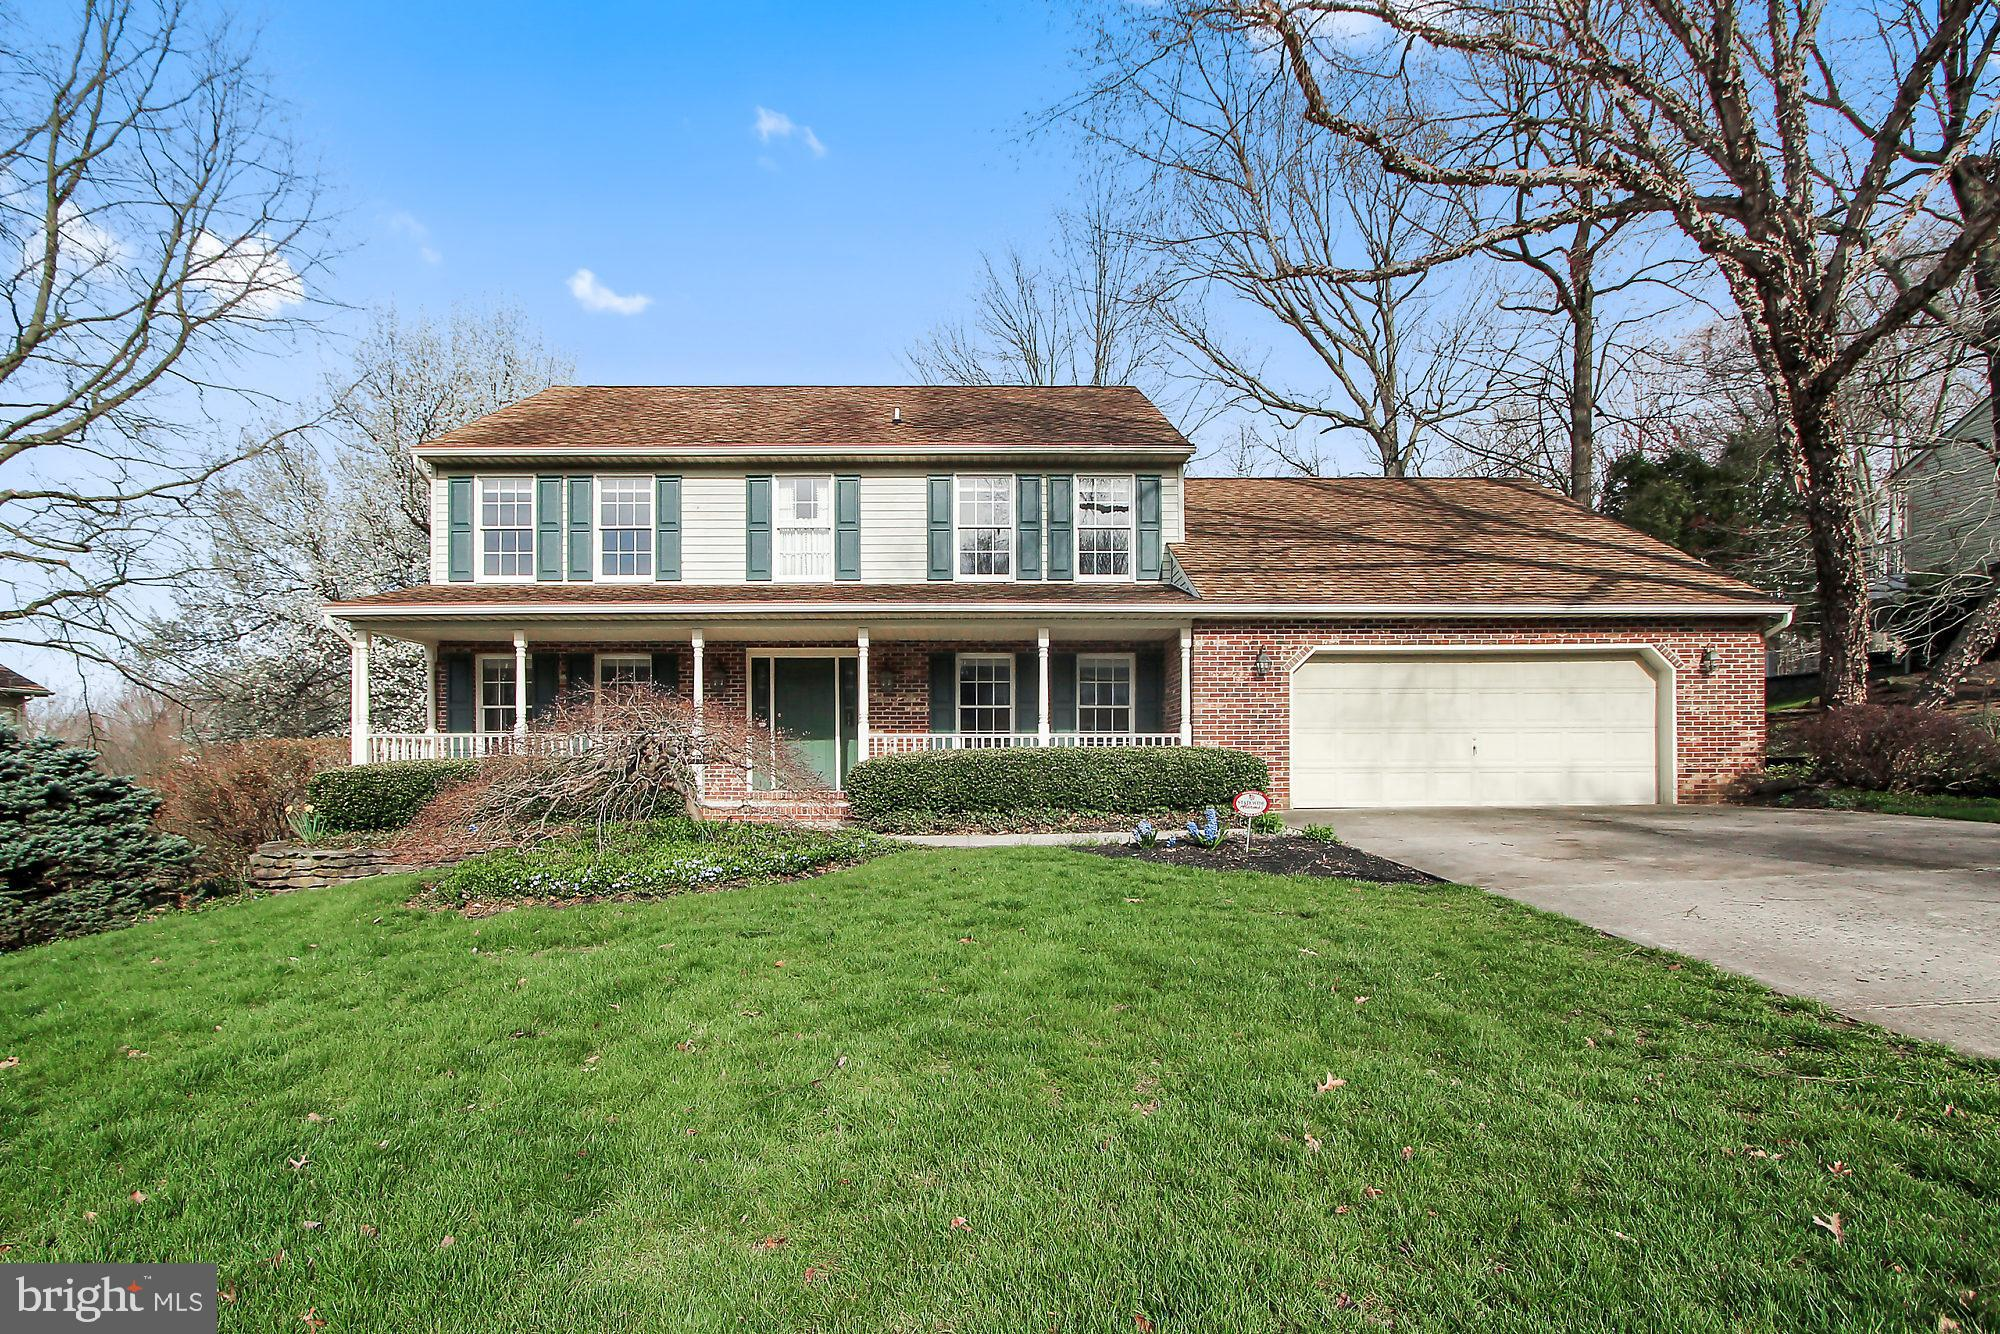 Contact Listing Agent to request Video Tour of this Beautiful 5BR Colonial in sought-after Tudor Man